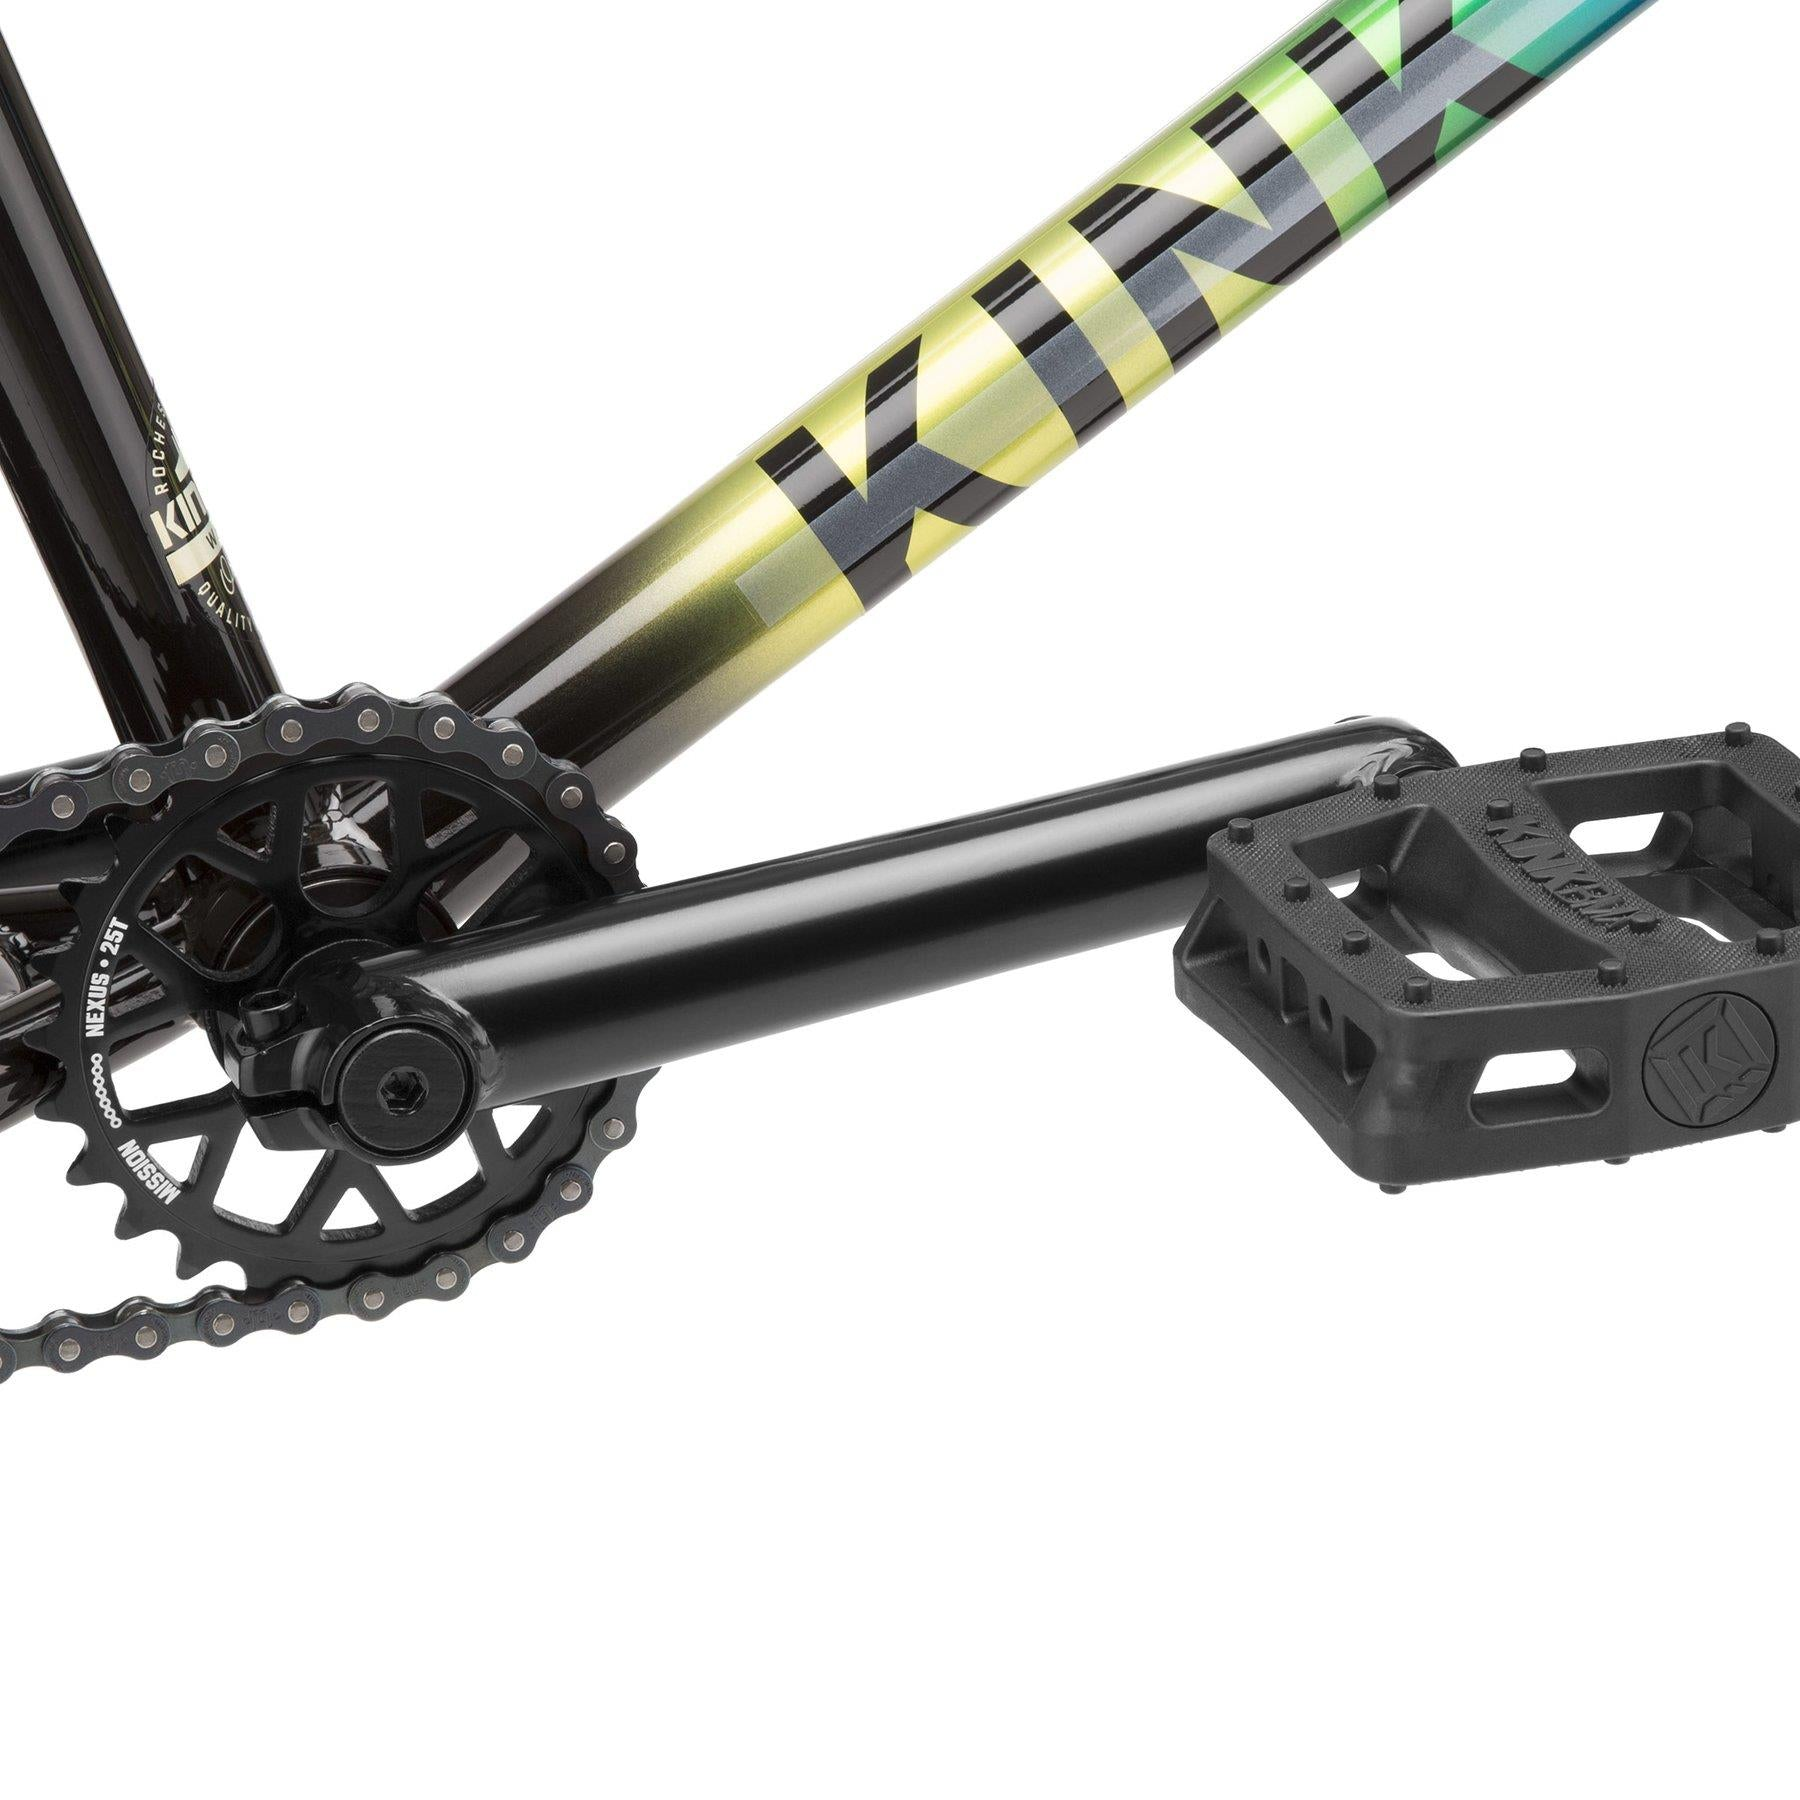 Kink Whip XL BMX Bike 2021